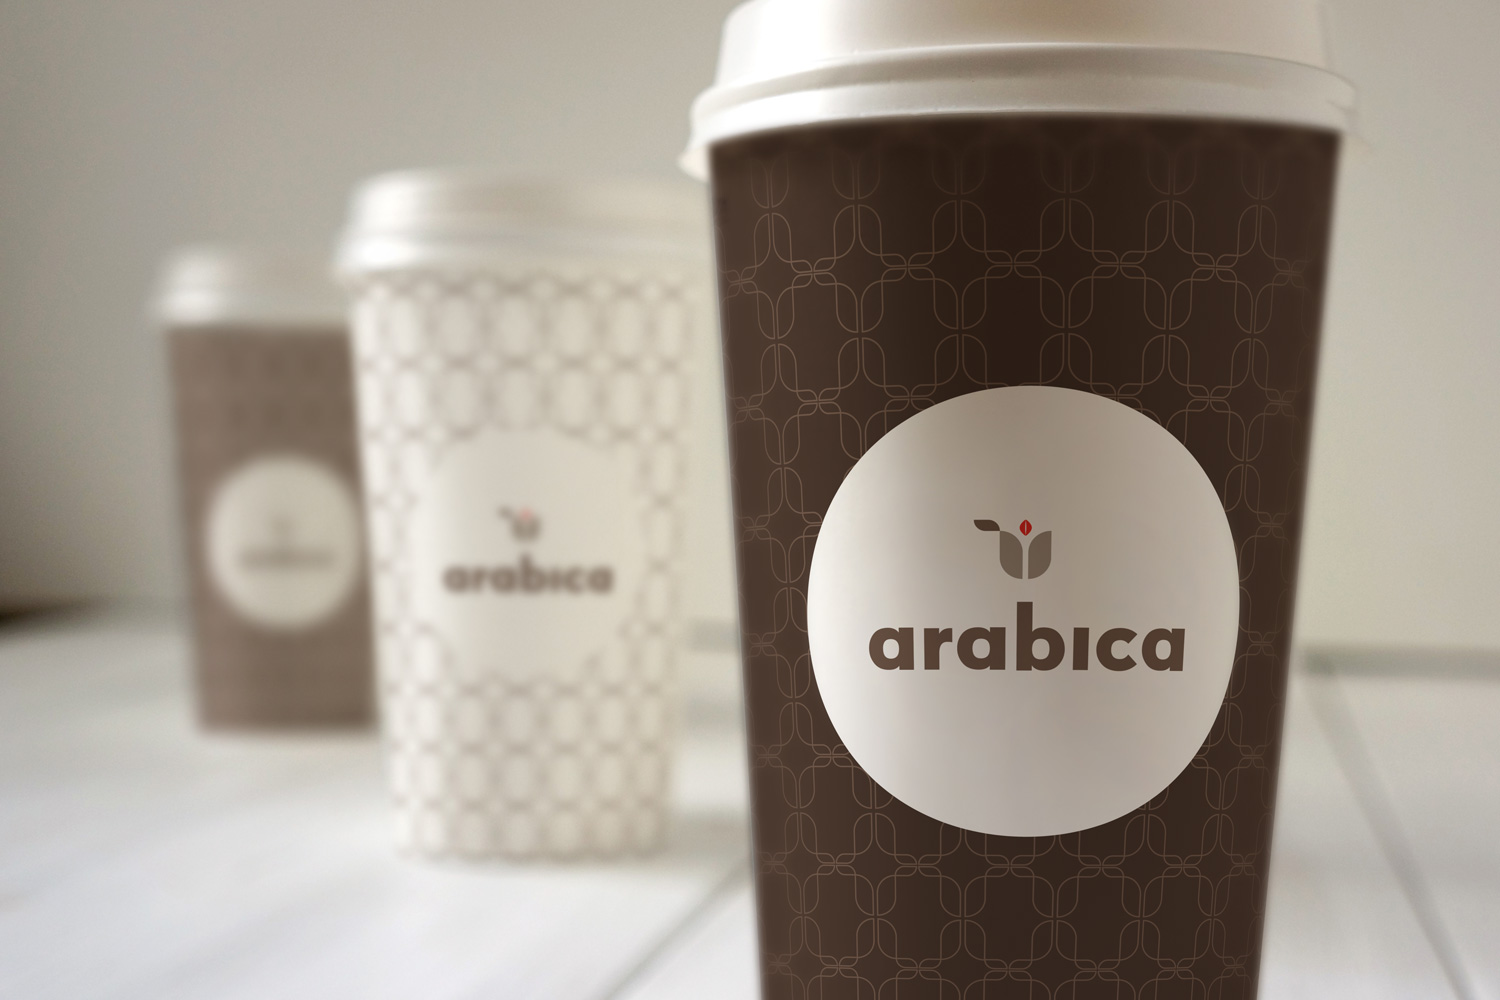 Arabica Tea Coffee Zeist Arabica On Packaging Of The World Creative Package